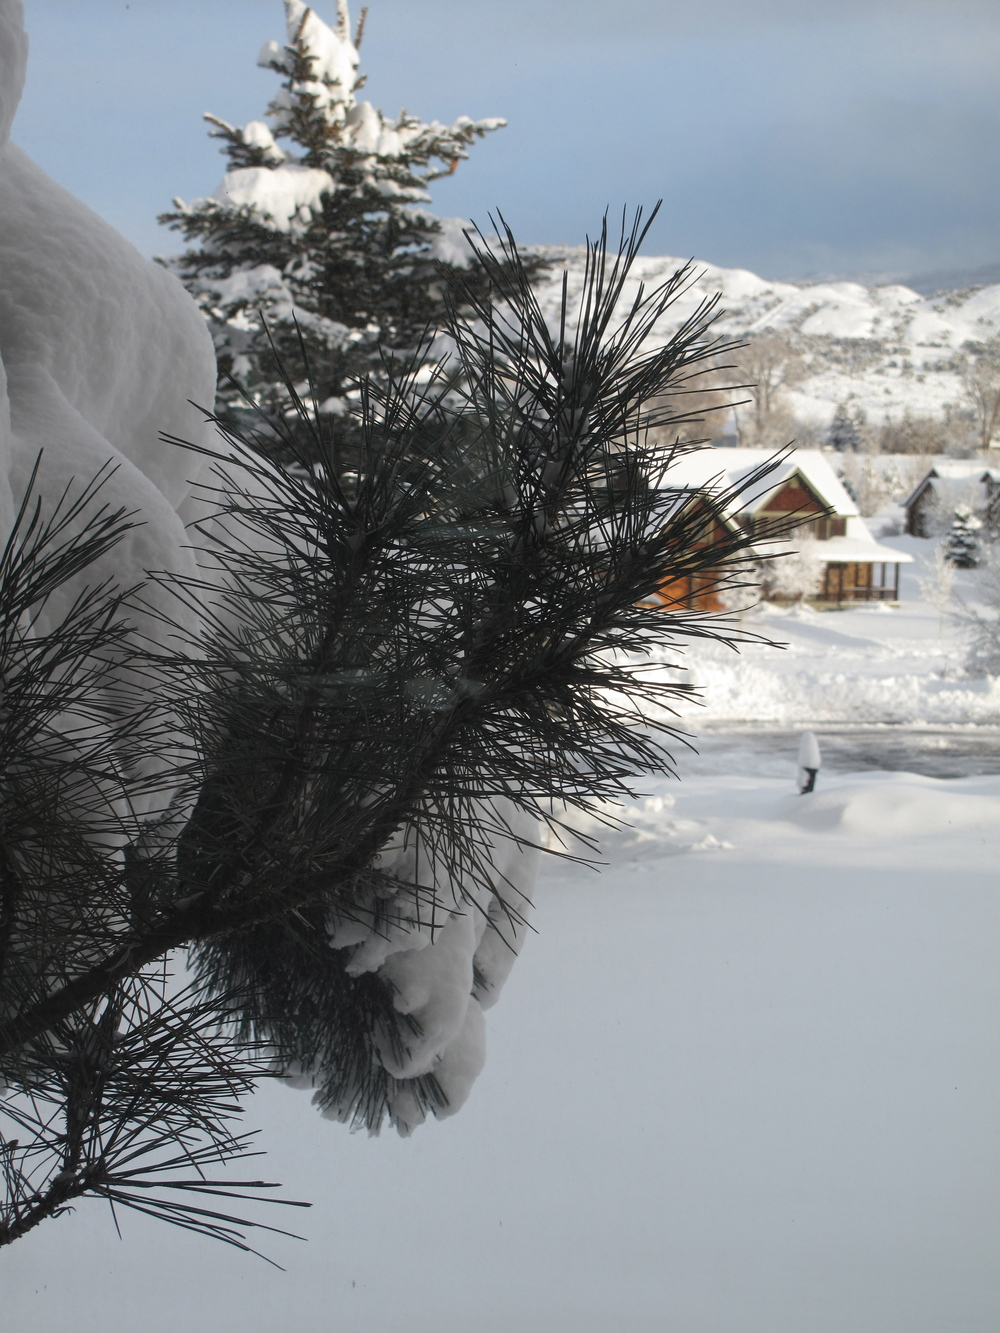 Colorado gingerbread houses through the snow and pine trees